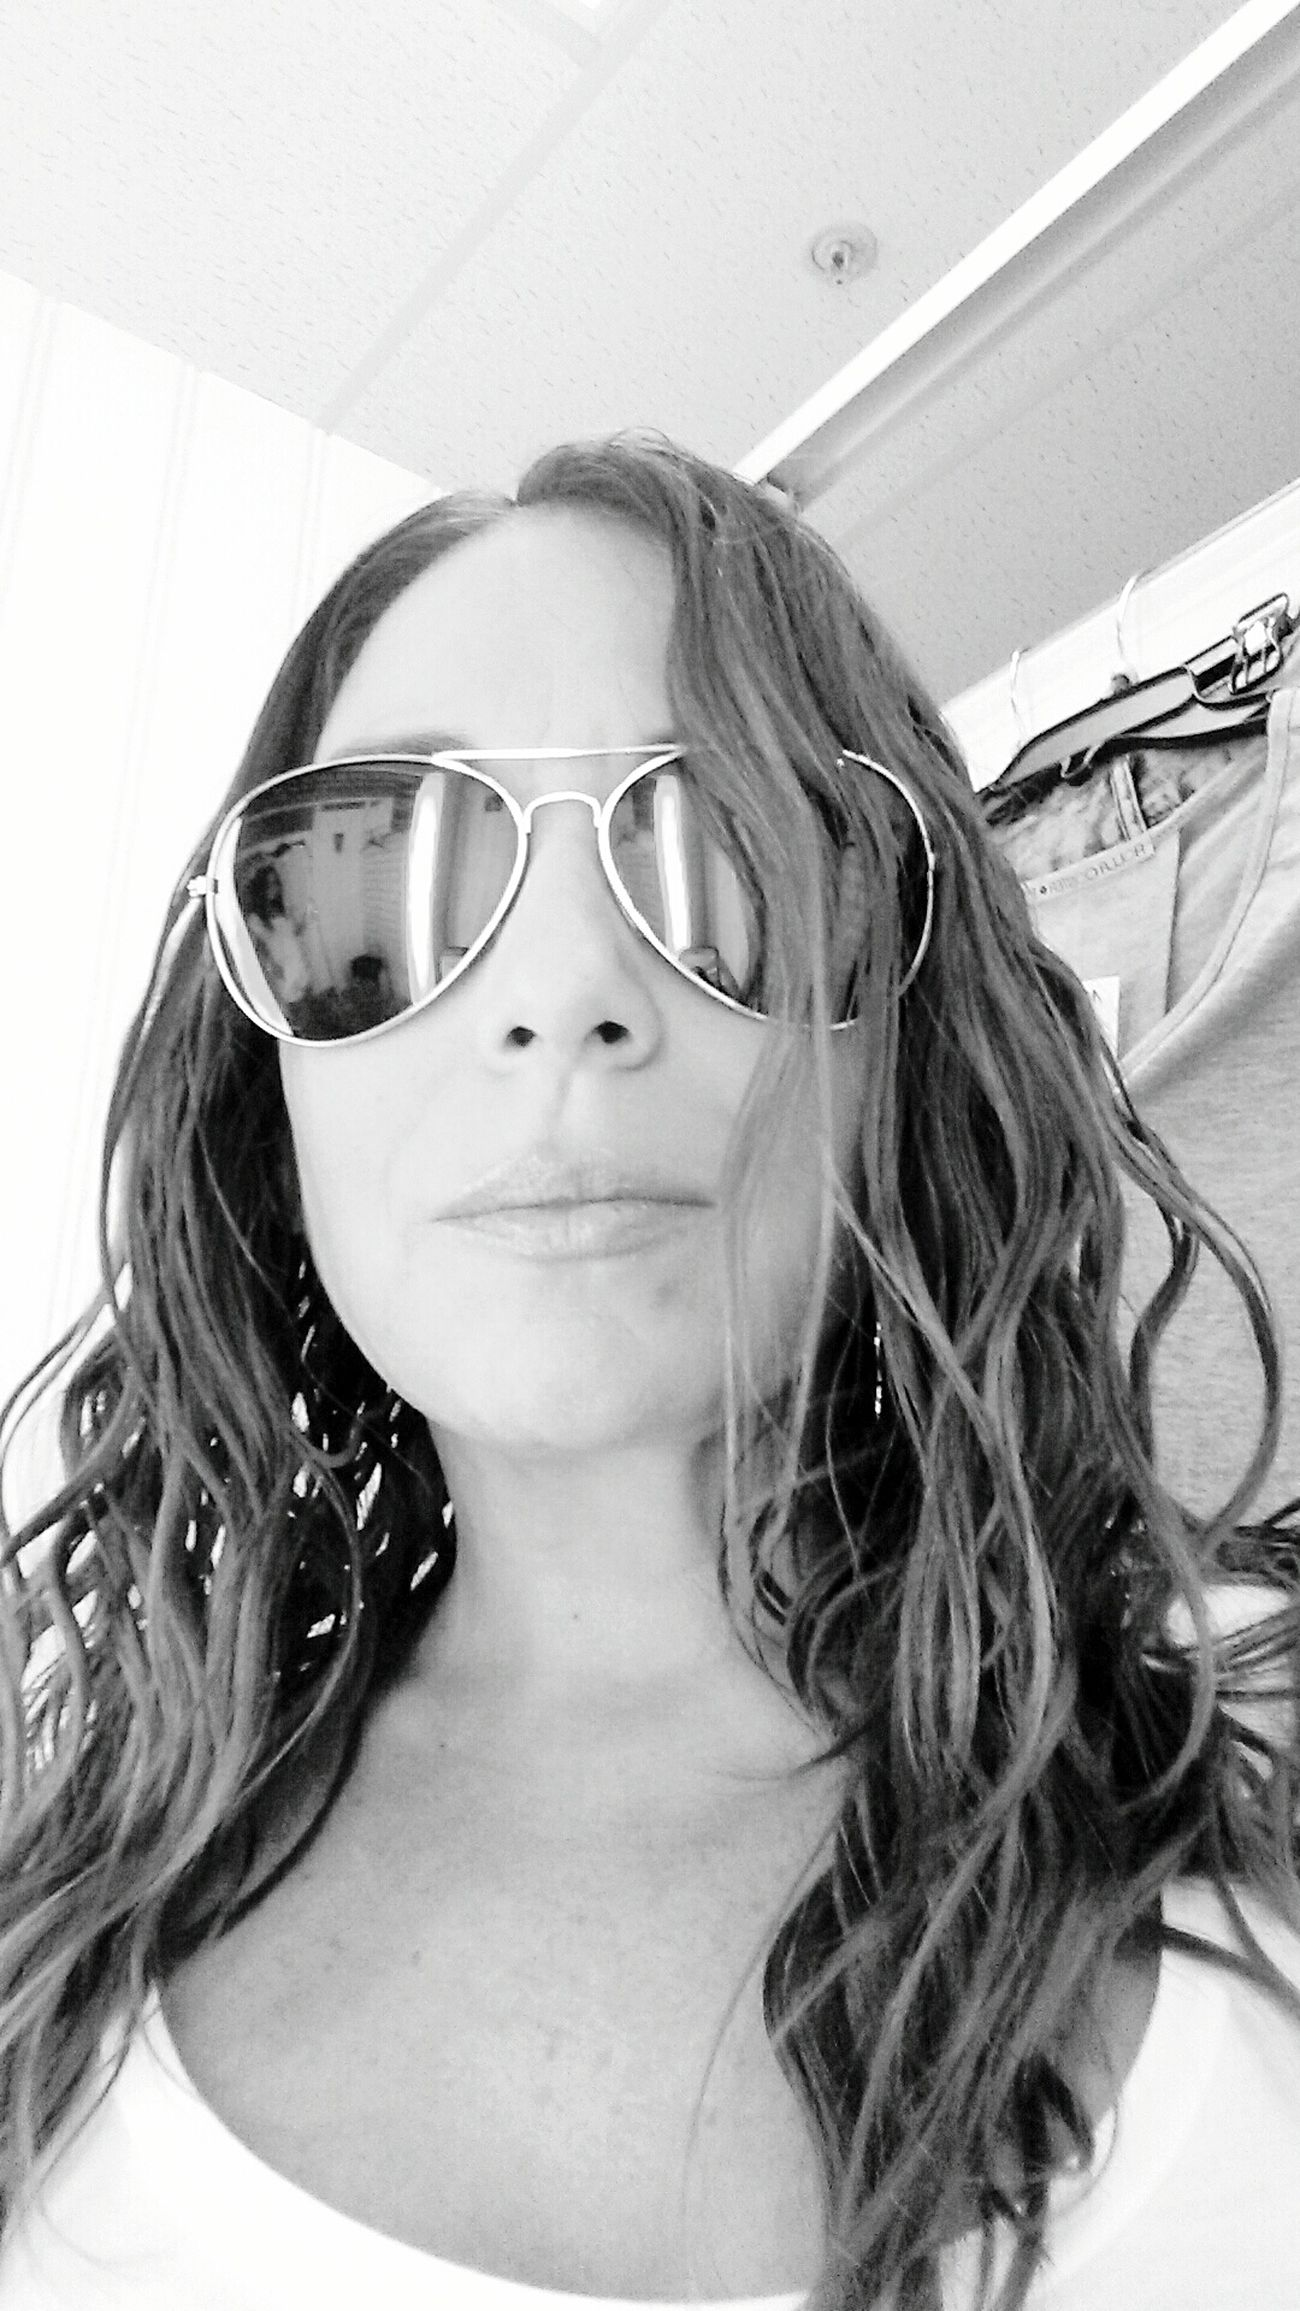 Black And White That's Me Selfie Latinasdoitbetter Hello World Style CrazyHairDay